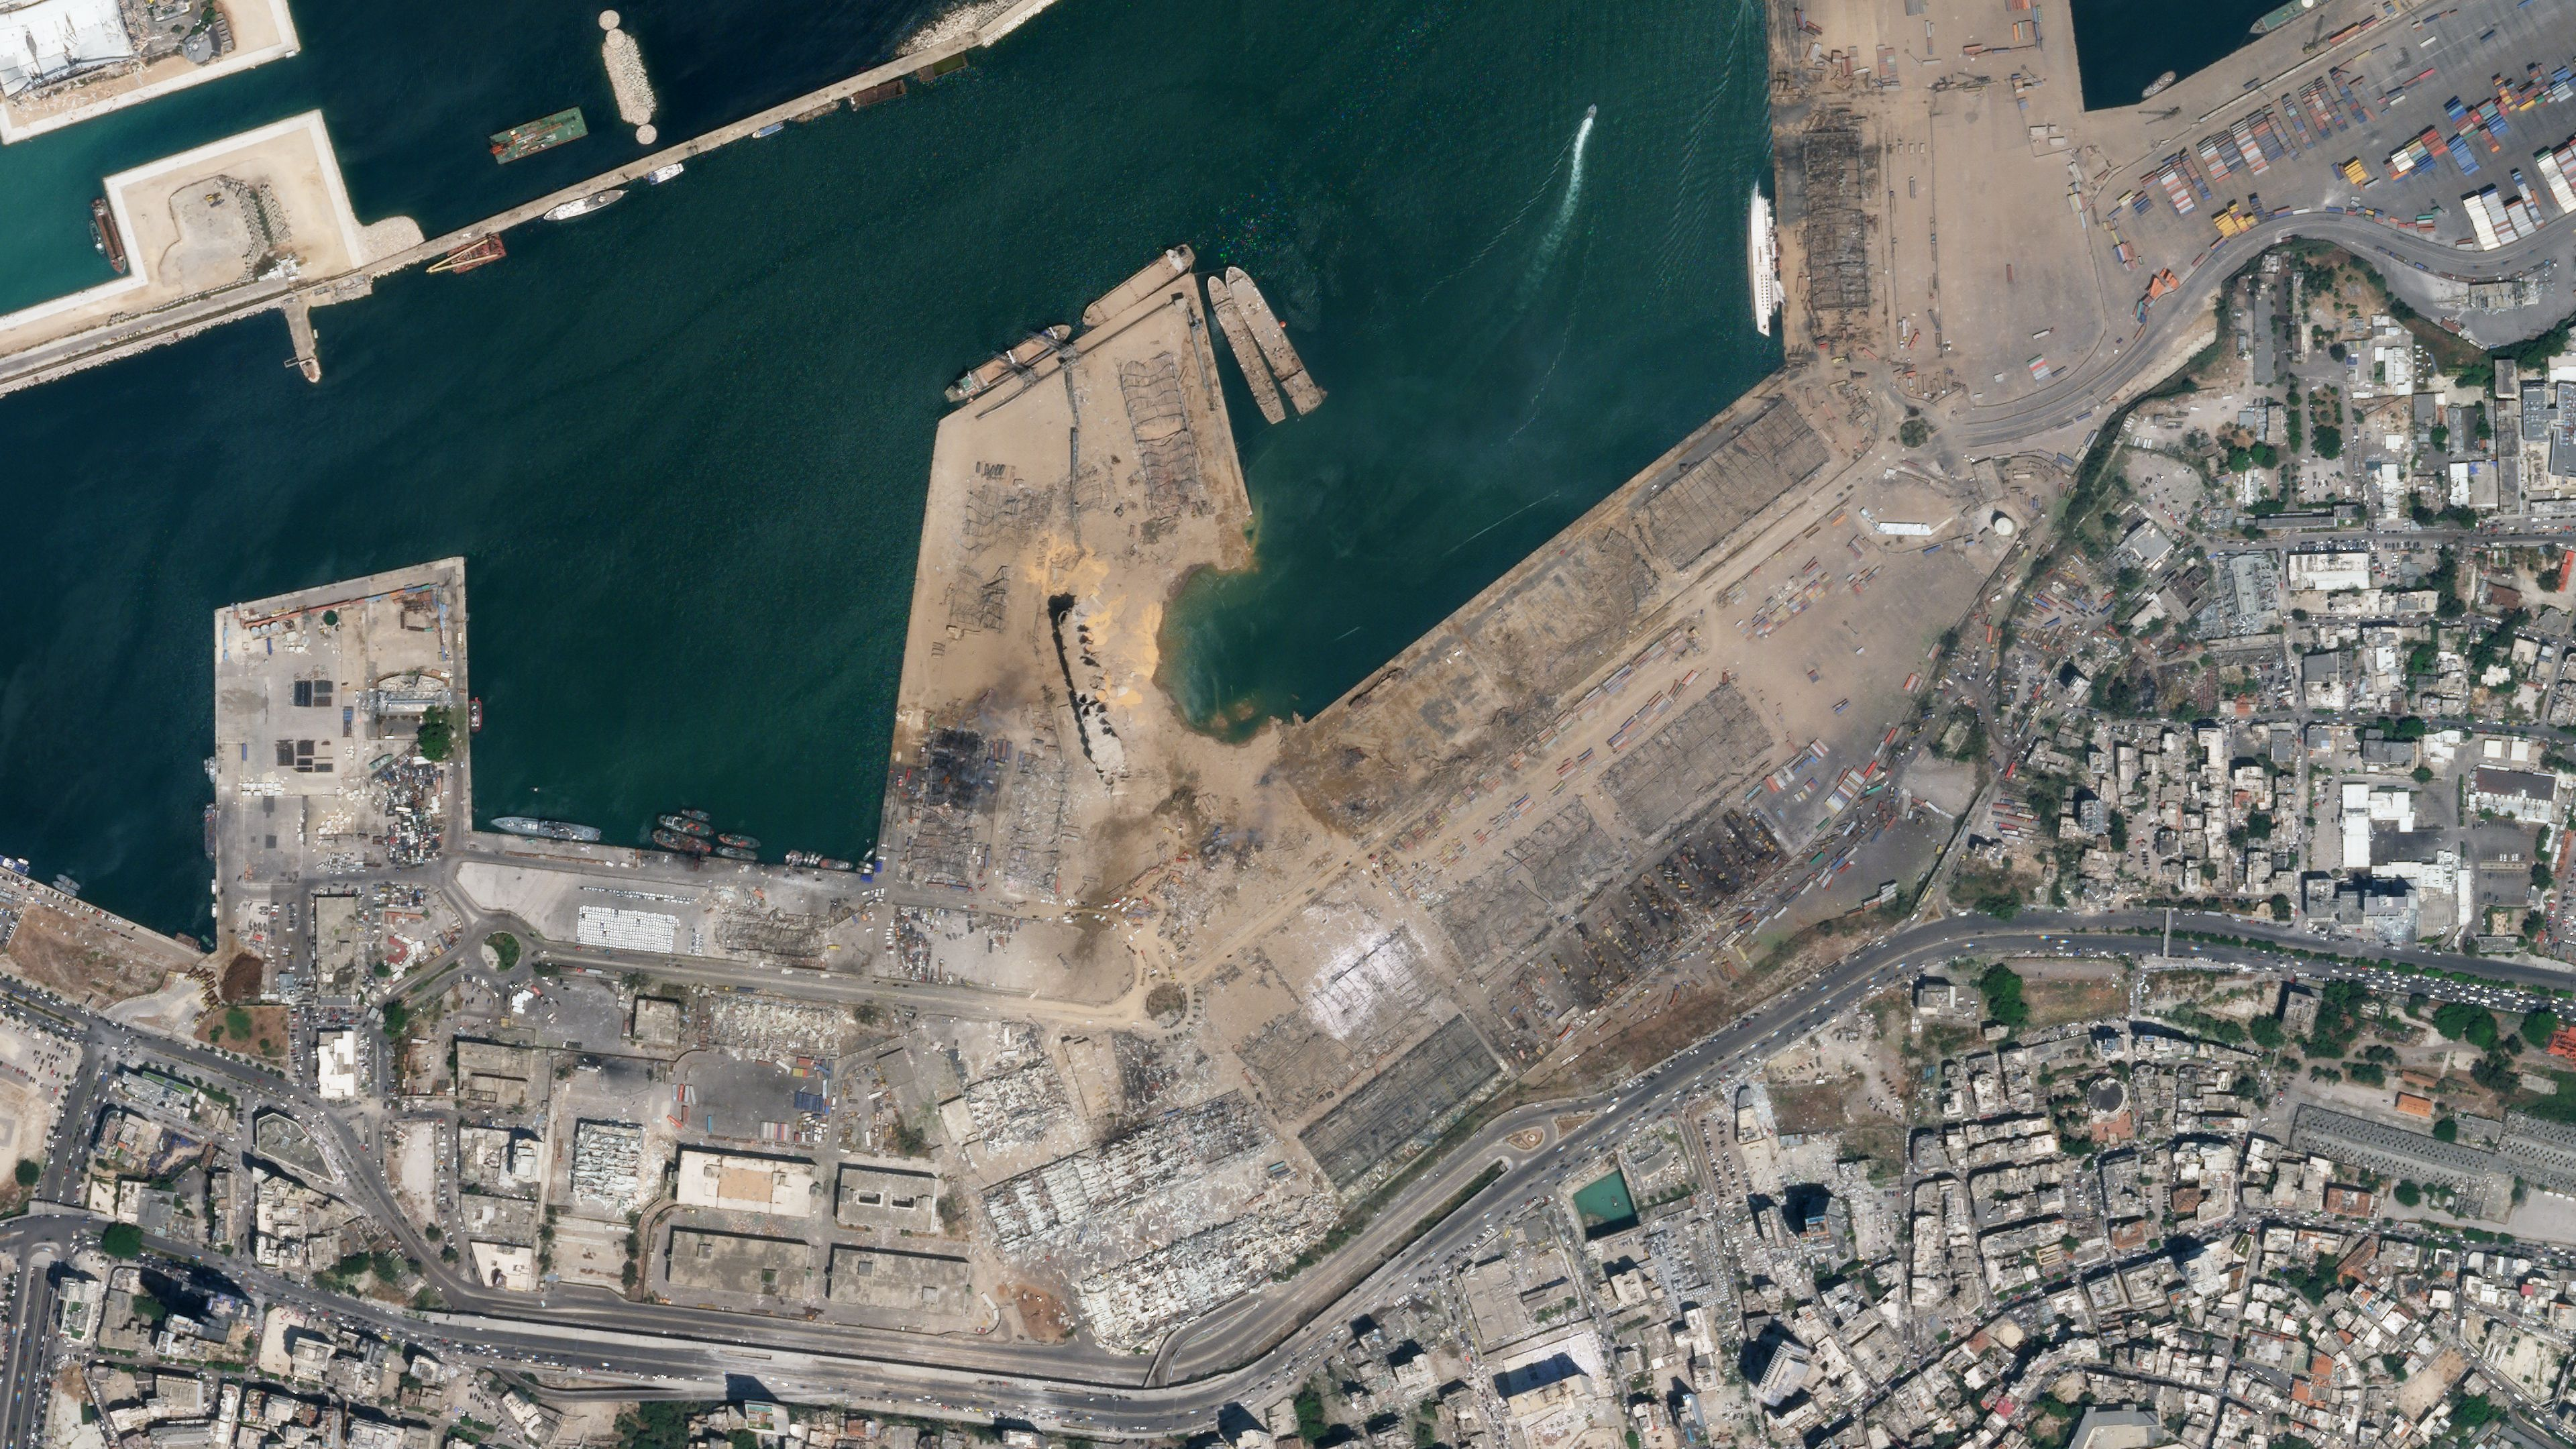 SkySat imagery of Beirut, Lebanon on August 5, 2020 © 2020, Planet Labs Inc. All Rights Reserved.